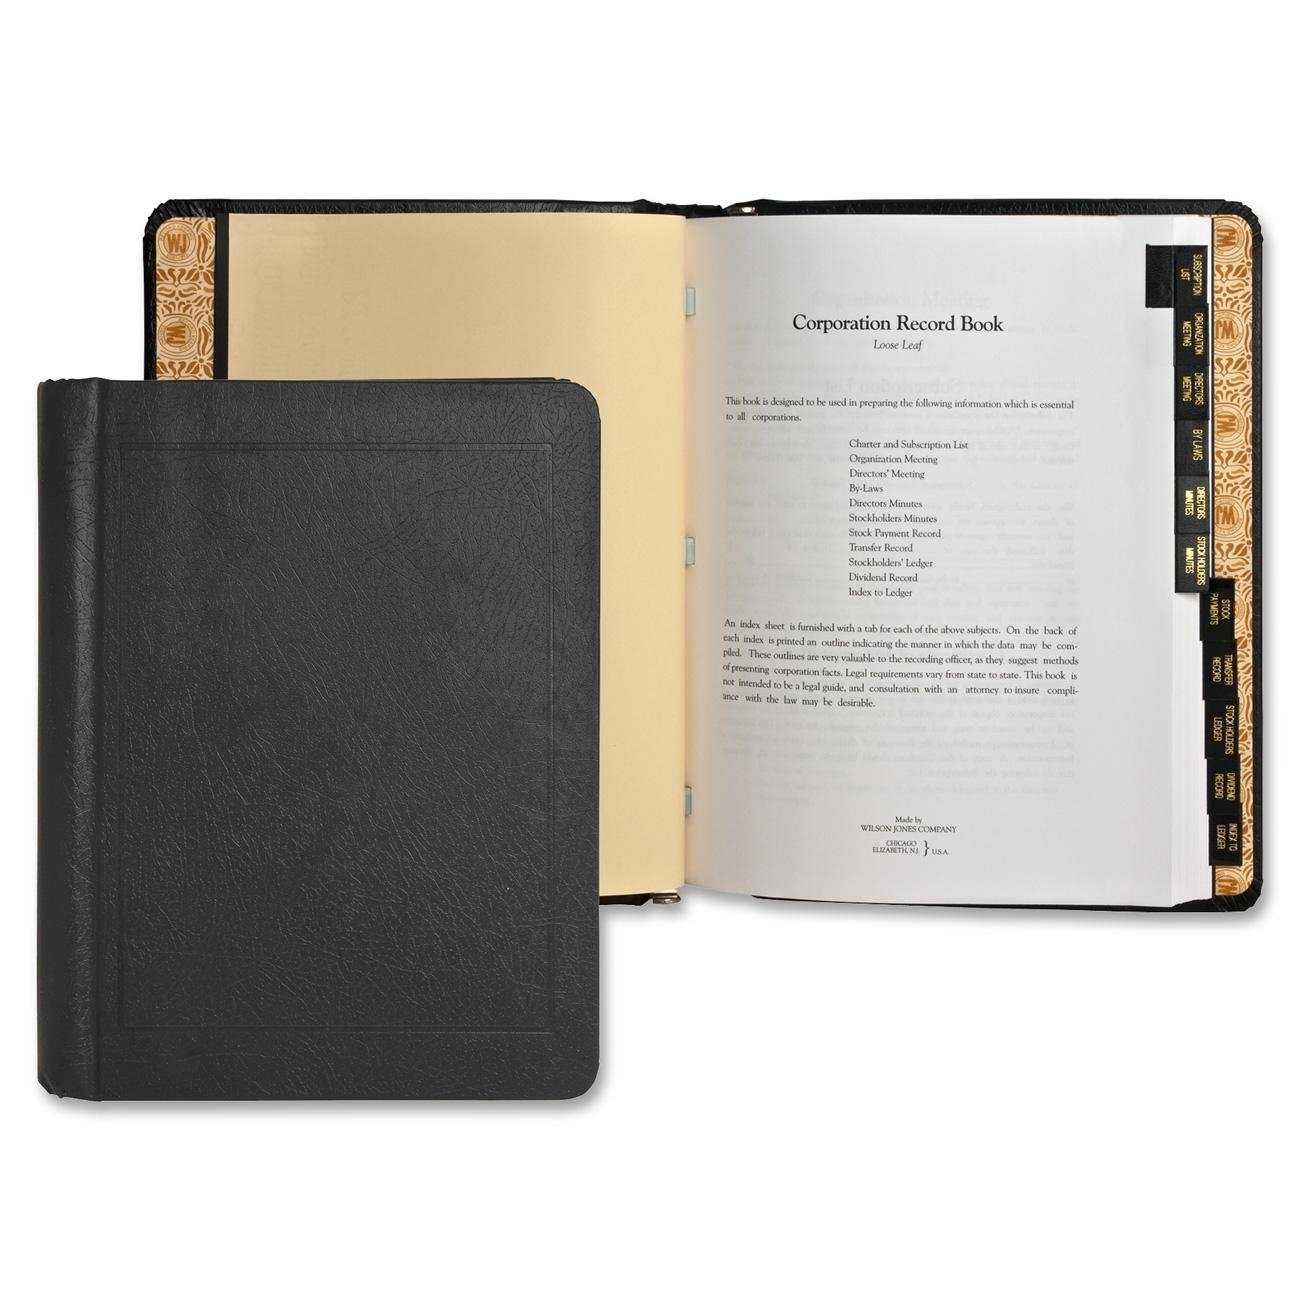 Wilson Jones Corporate Record and Minute Book, 75 Pages, 11 Index Tabs, Letter Size, Imitation Leather, Black (W0399-00) ACCO Brands